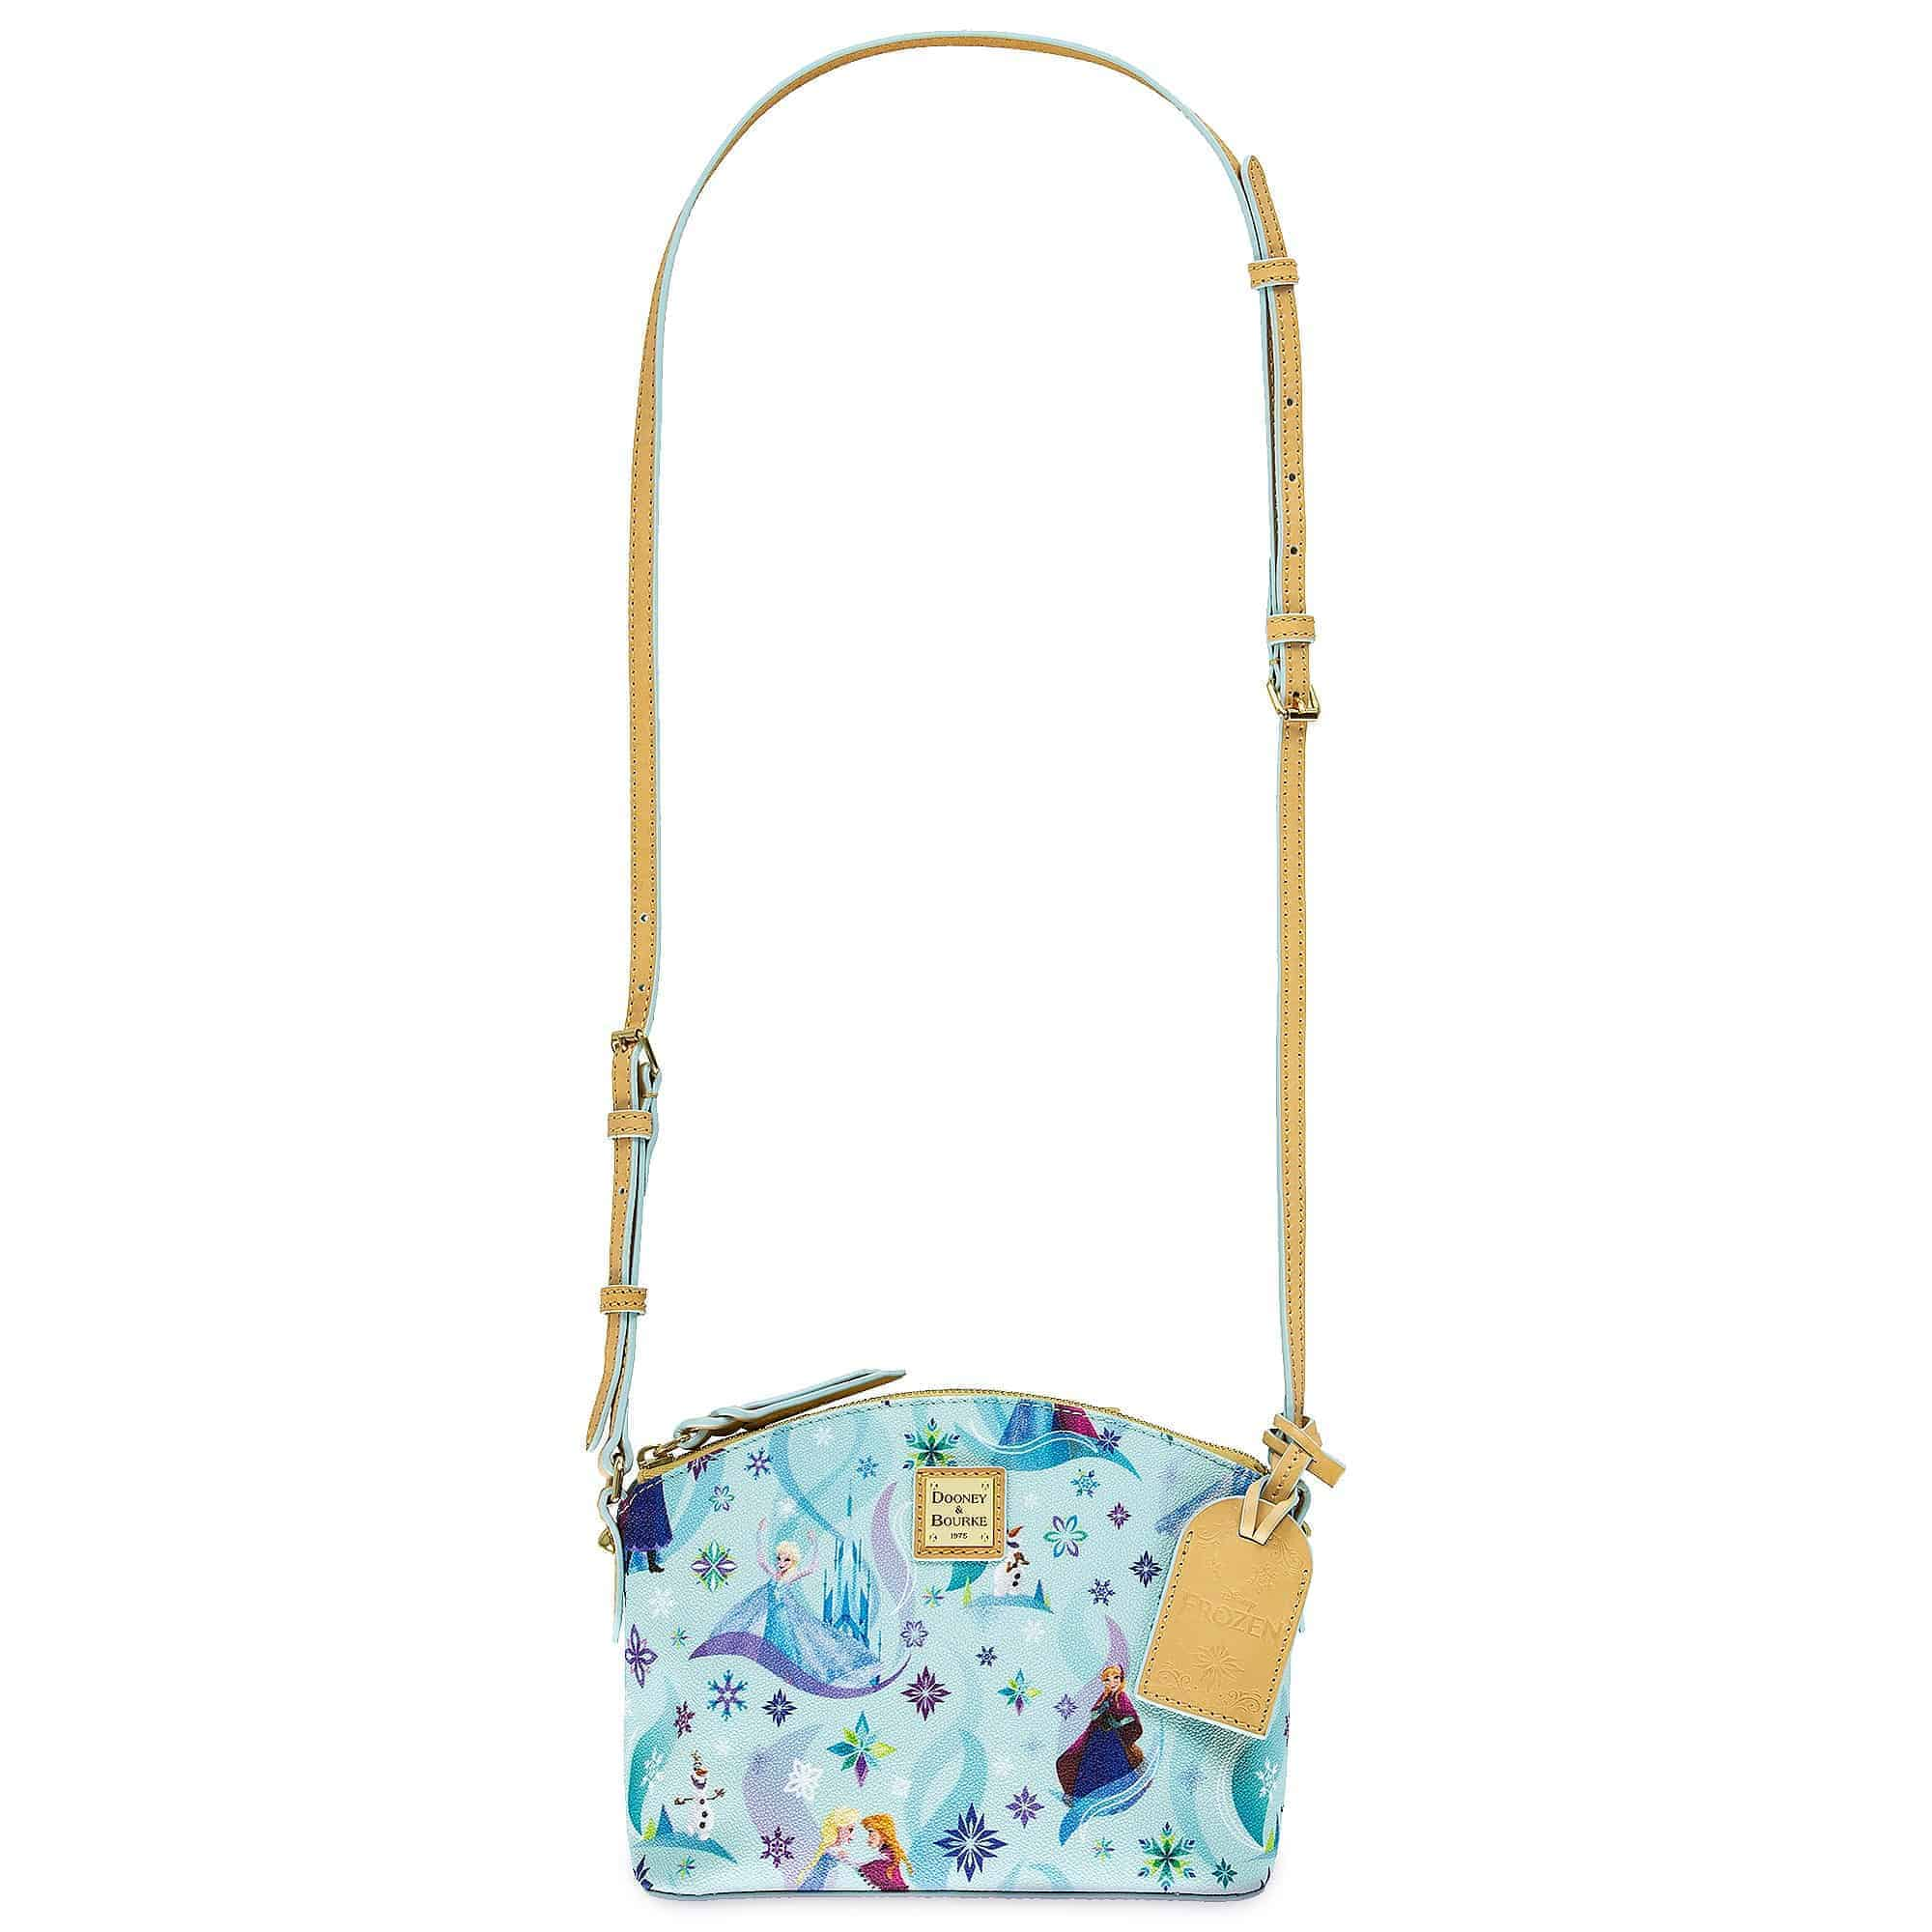 Frozen Crossbody (strap) by Dooney and Bourke